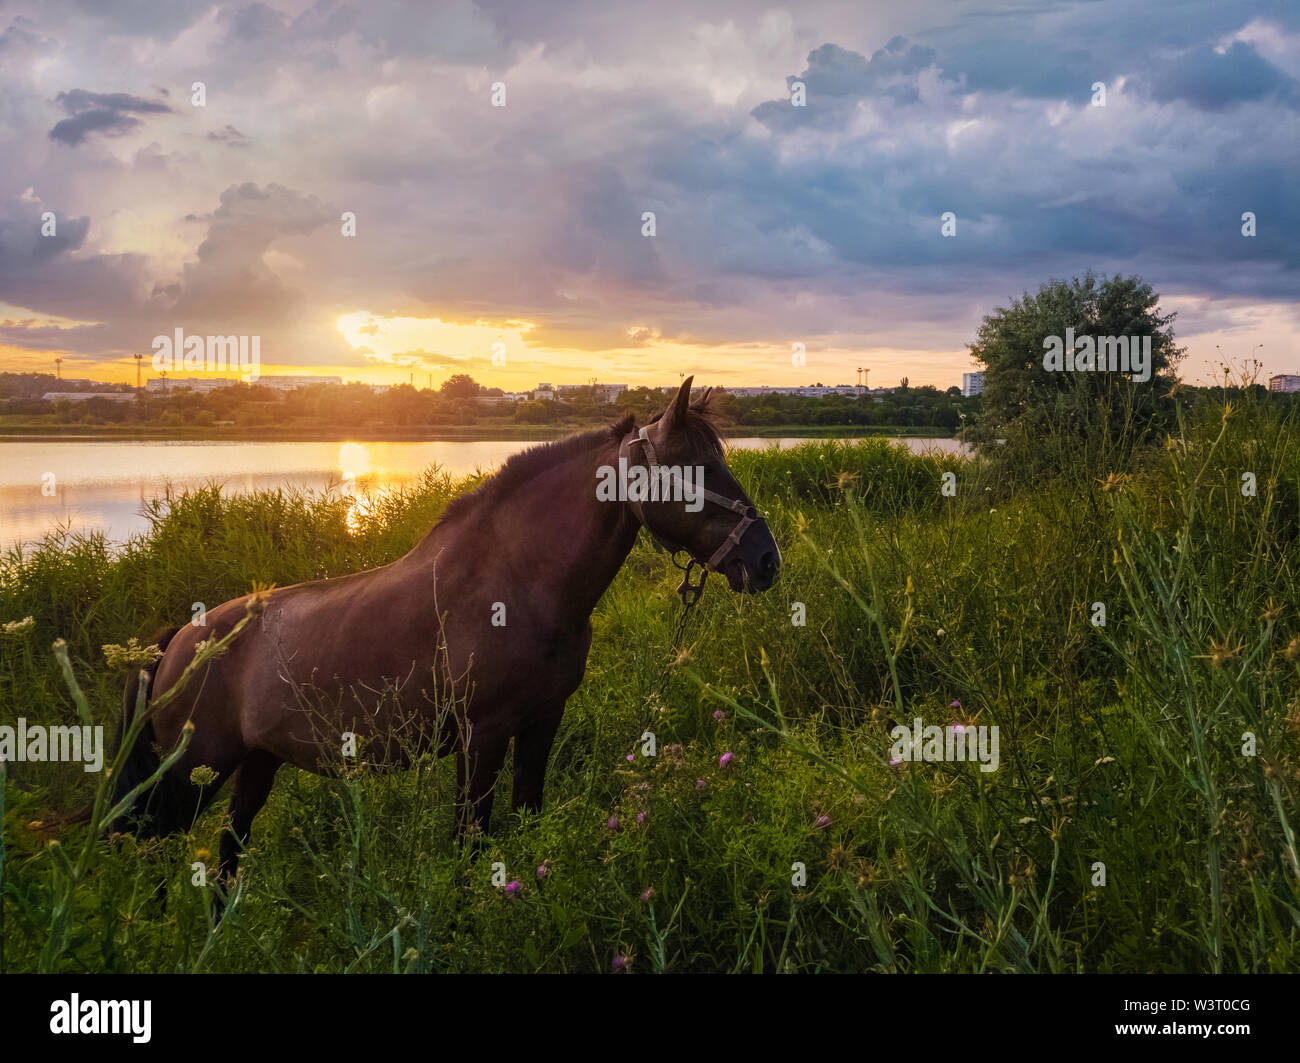 Brown horse grazing on a green grass field over sunset sky background. Rural scene with a stallion on pasture near lake at sundown. - Stock Image